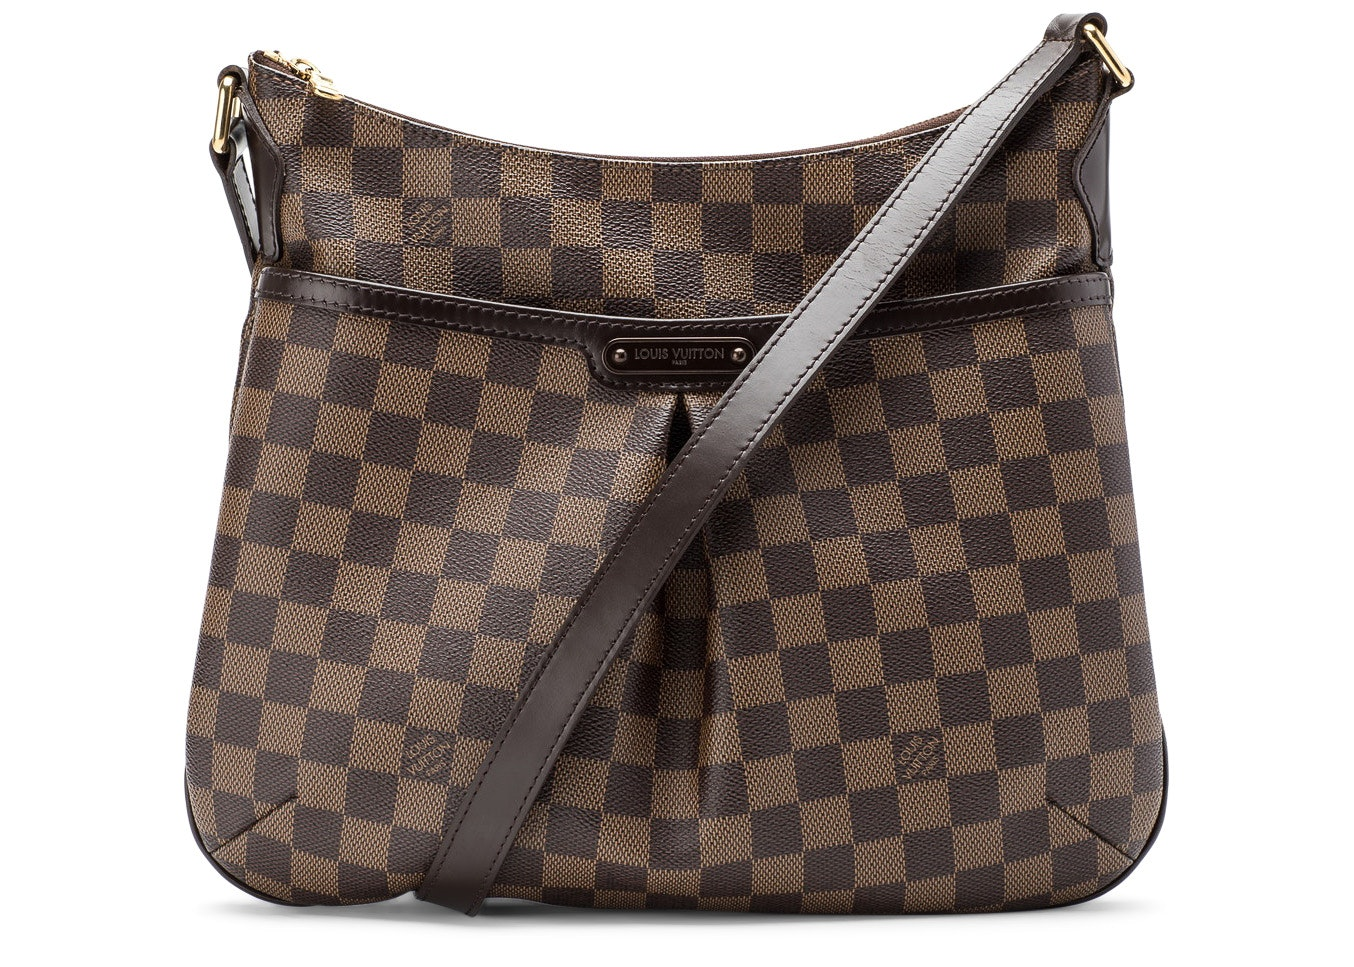 Louis Vuitton Bloomsbury Damier Ebene PM Brown